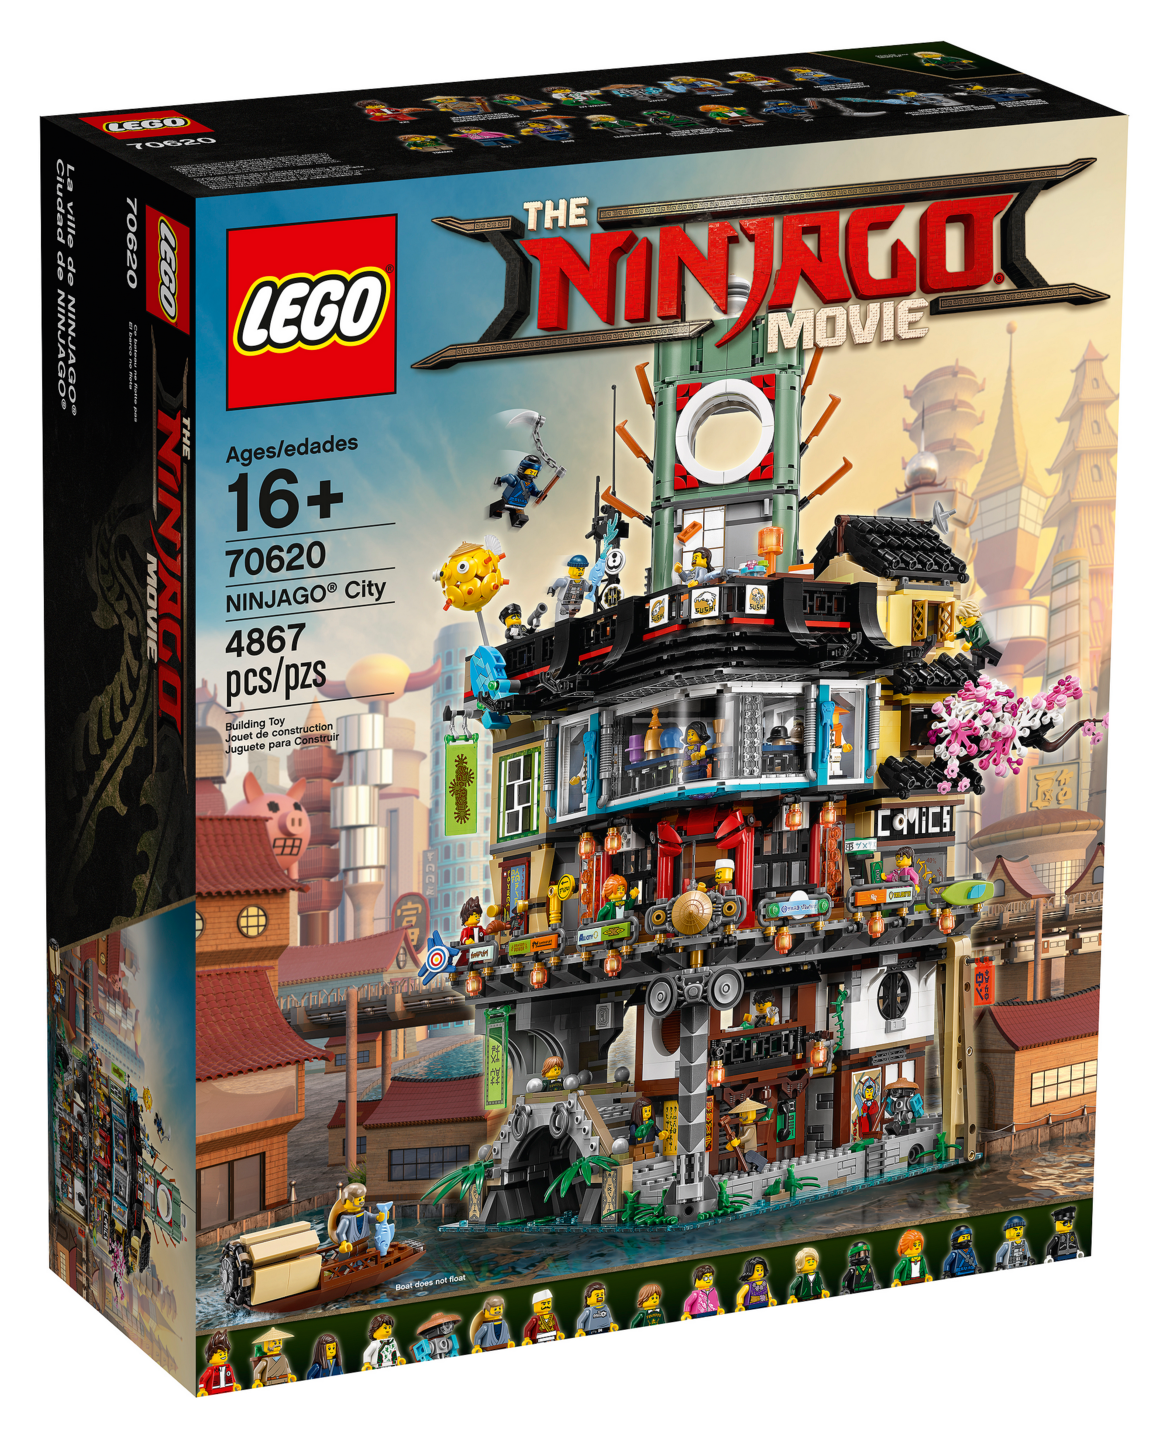 Lego Ninjago Has A Long And Storied History You Definitely Didnt Hands Of Time Brothers Dan Kevin Hageman Who Wrote Masters Spinjitzu Animated Series Co The Movie This Film As Well